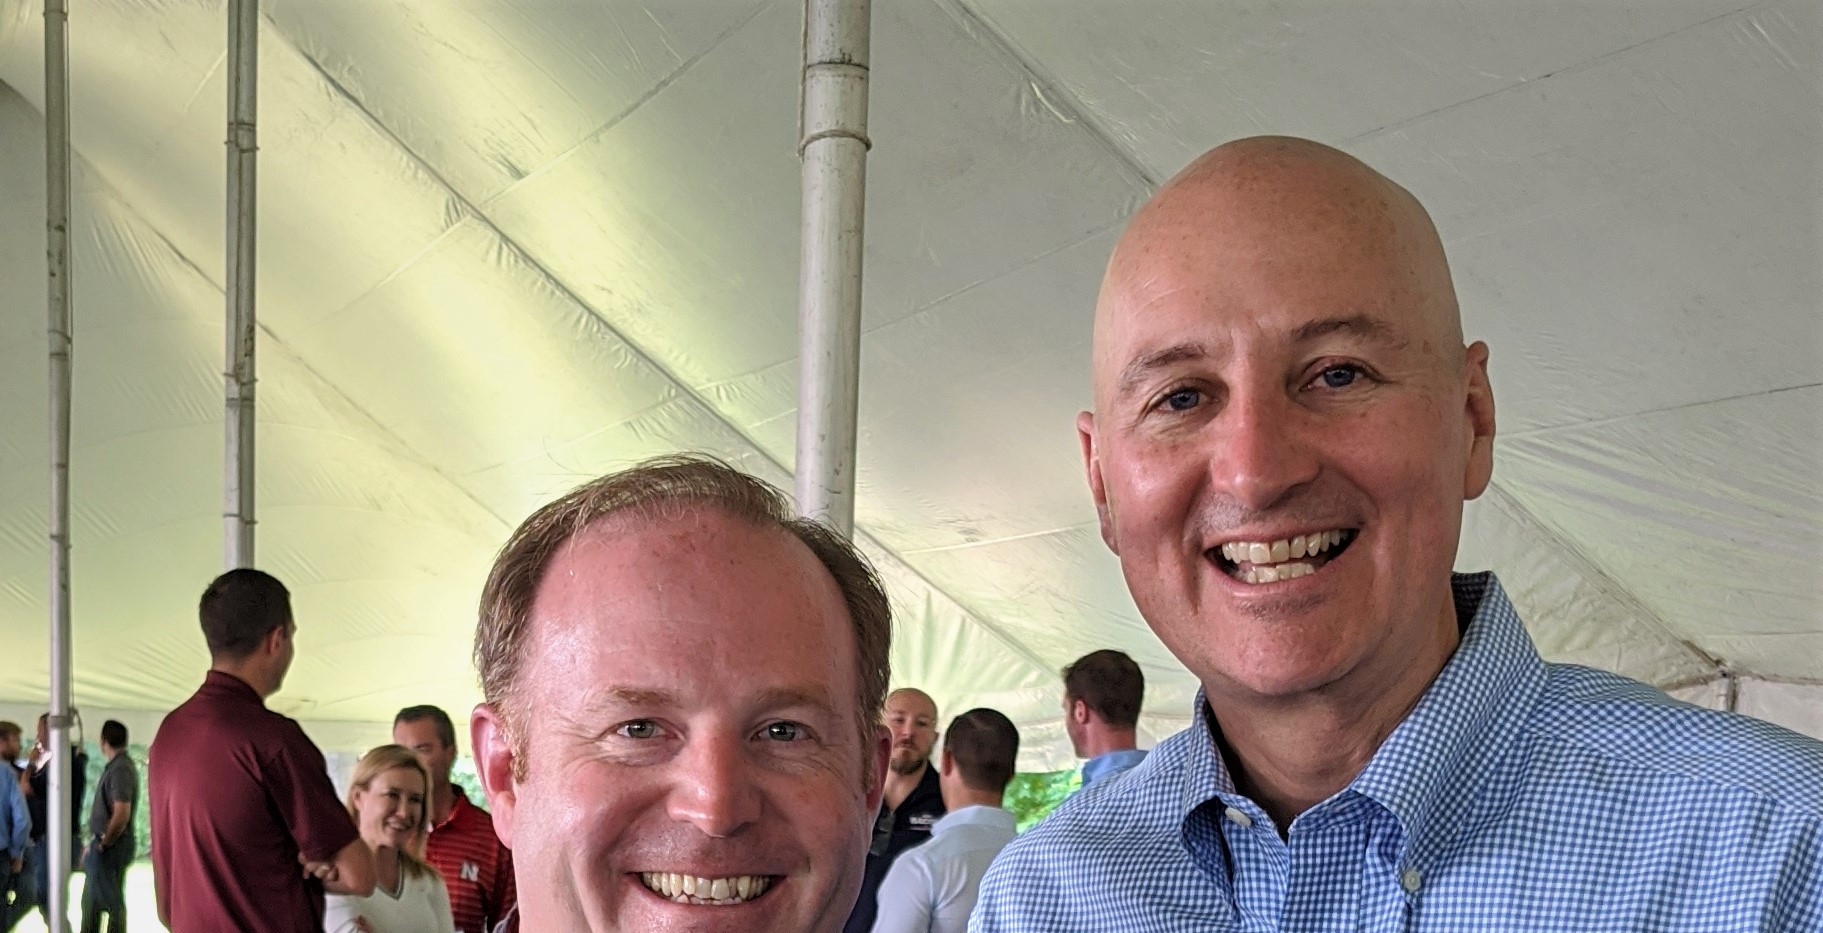 Governor Ricketts.jpg